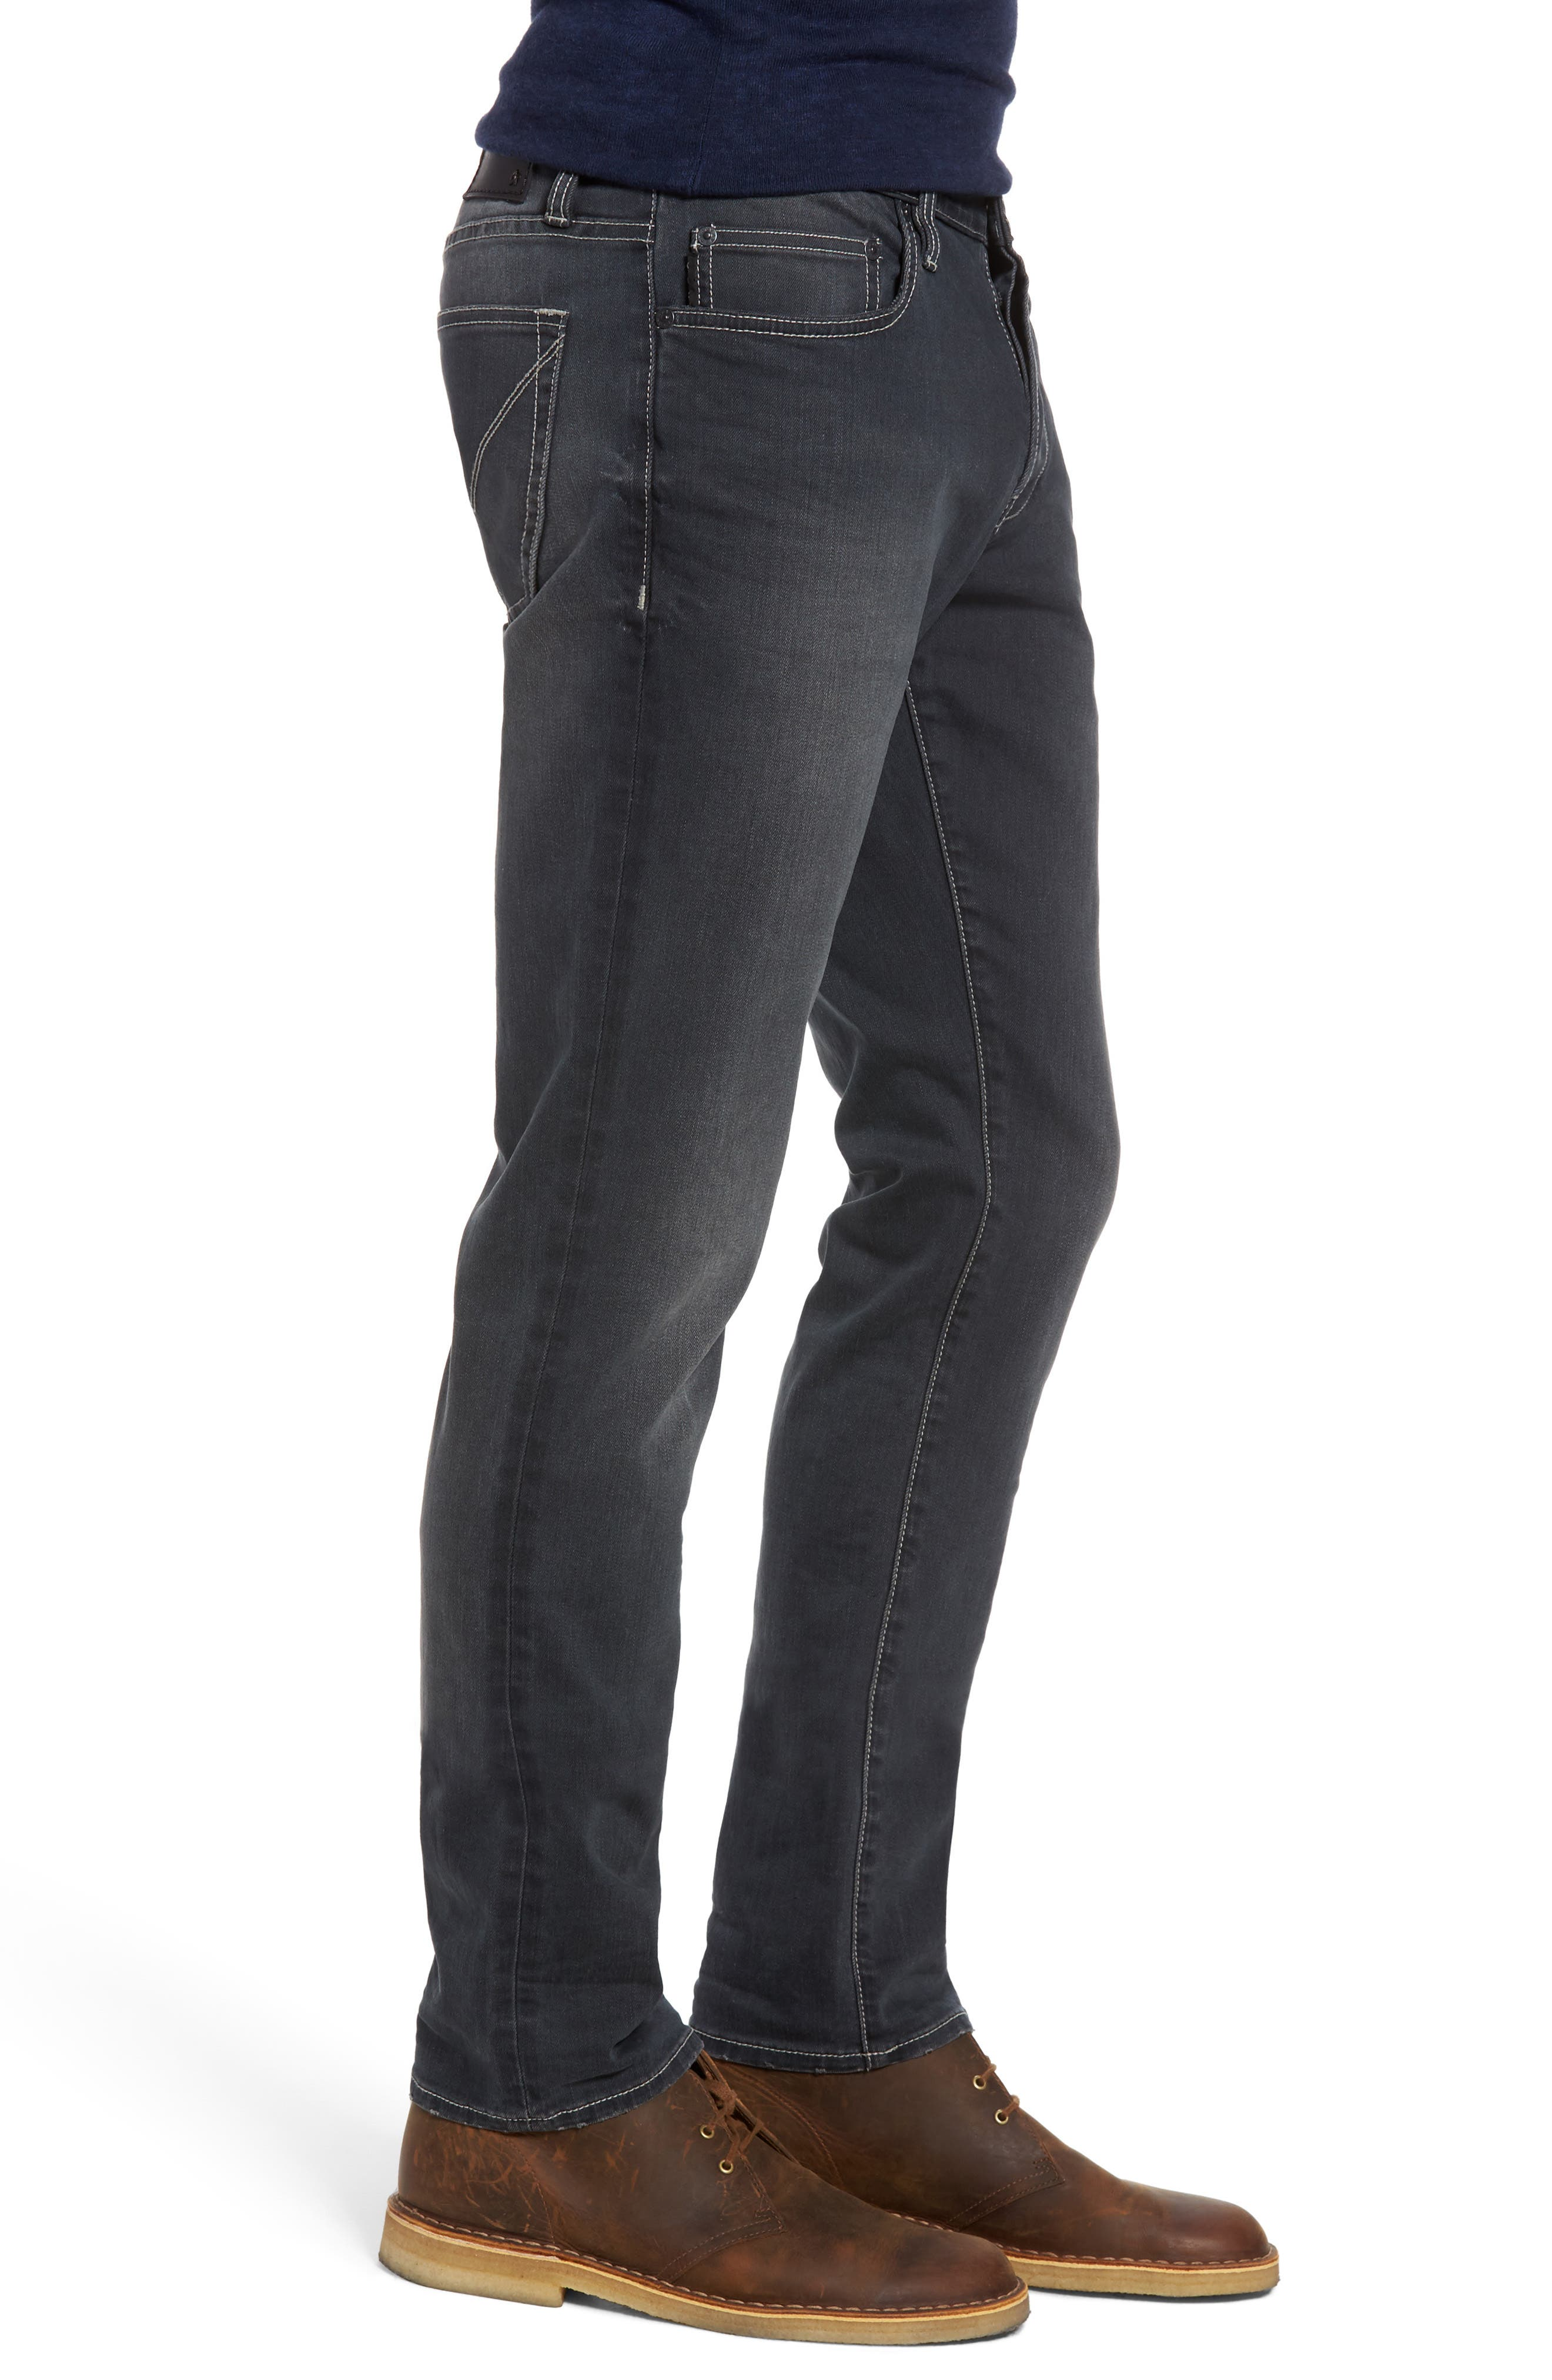 Wight Skinny Jeans,                             Alternate thumbnail 13, color,